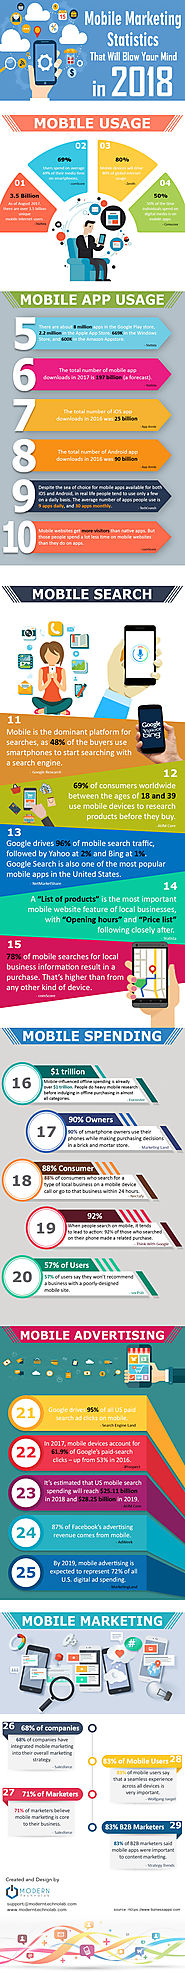 Mobile Marketing Statistics That Will Blow Your Mind In 2018 [Infographic]